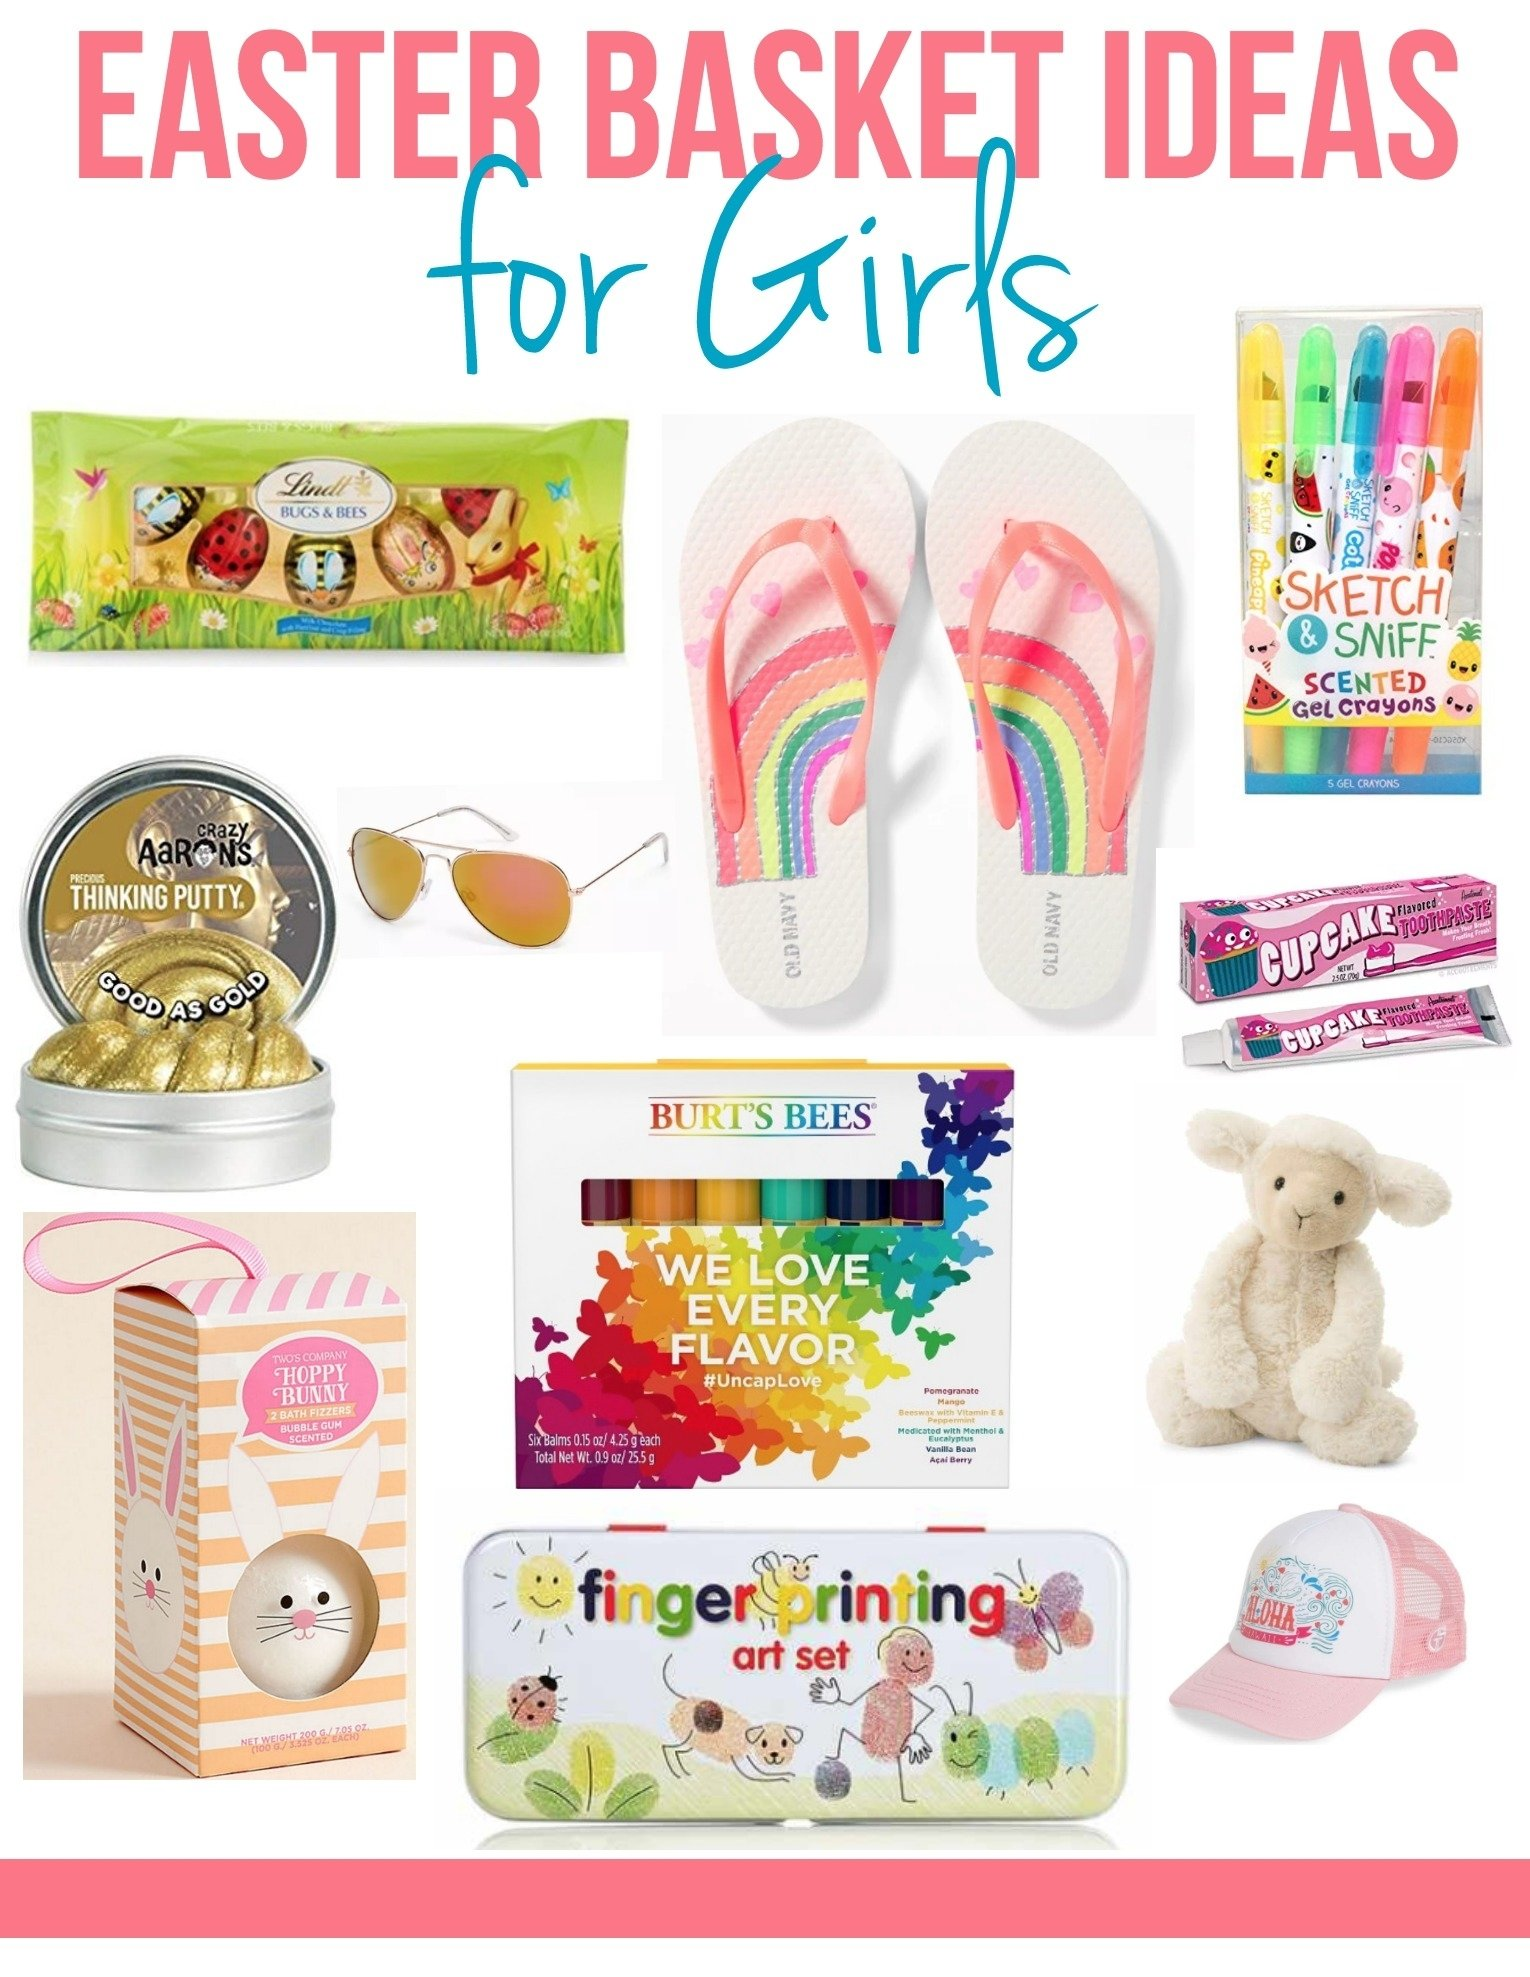 easter basket ideas for girls - my frugal adventures